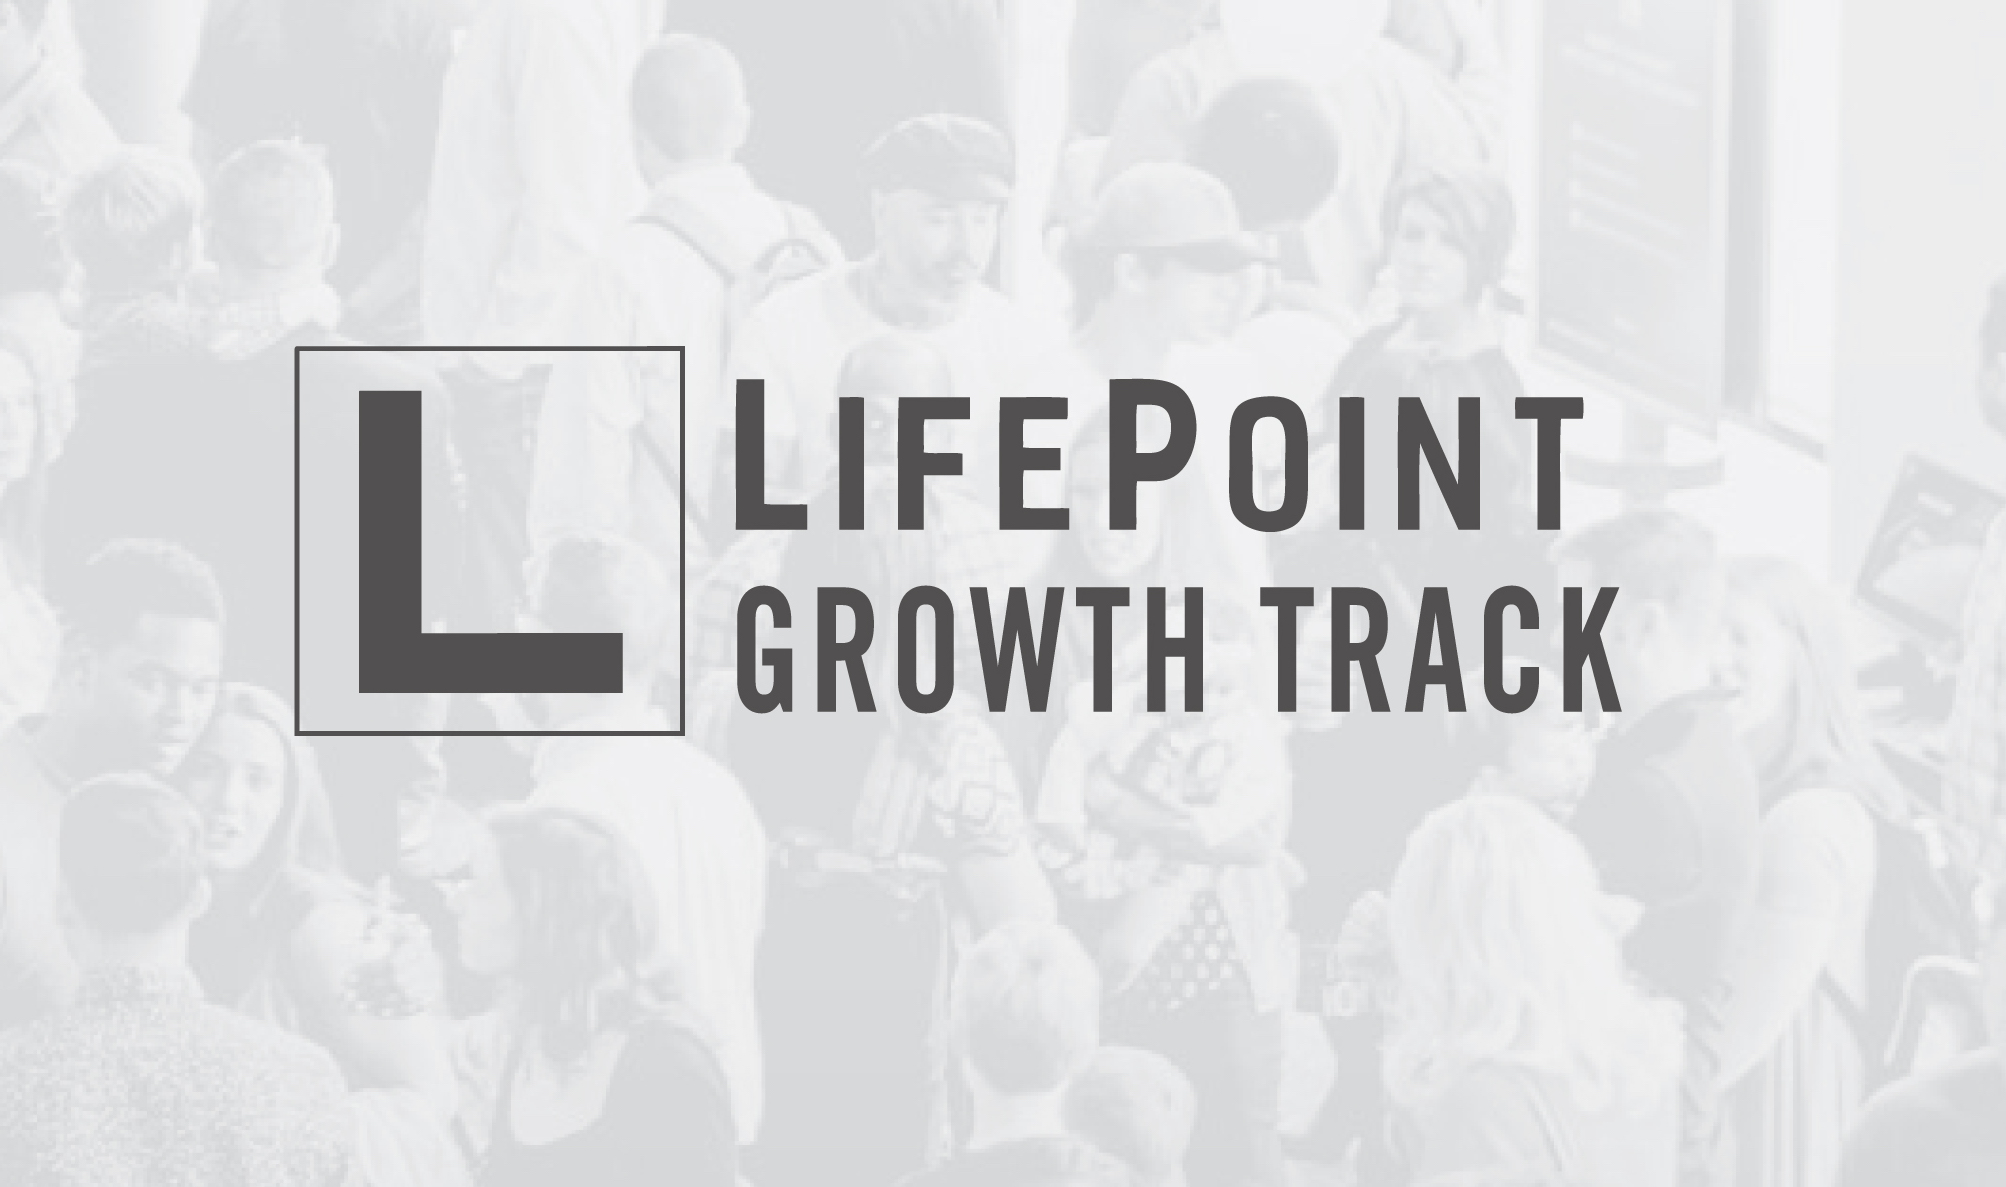 Lifepoint front cover copy